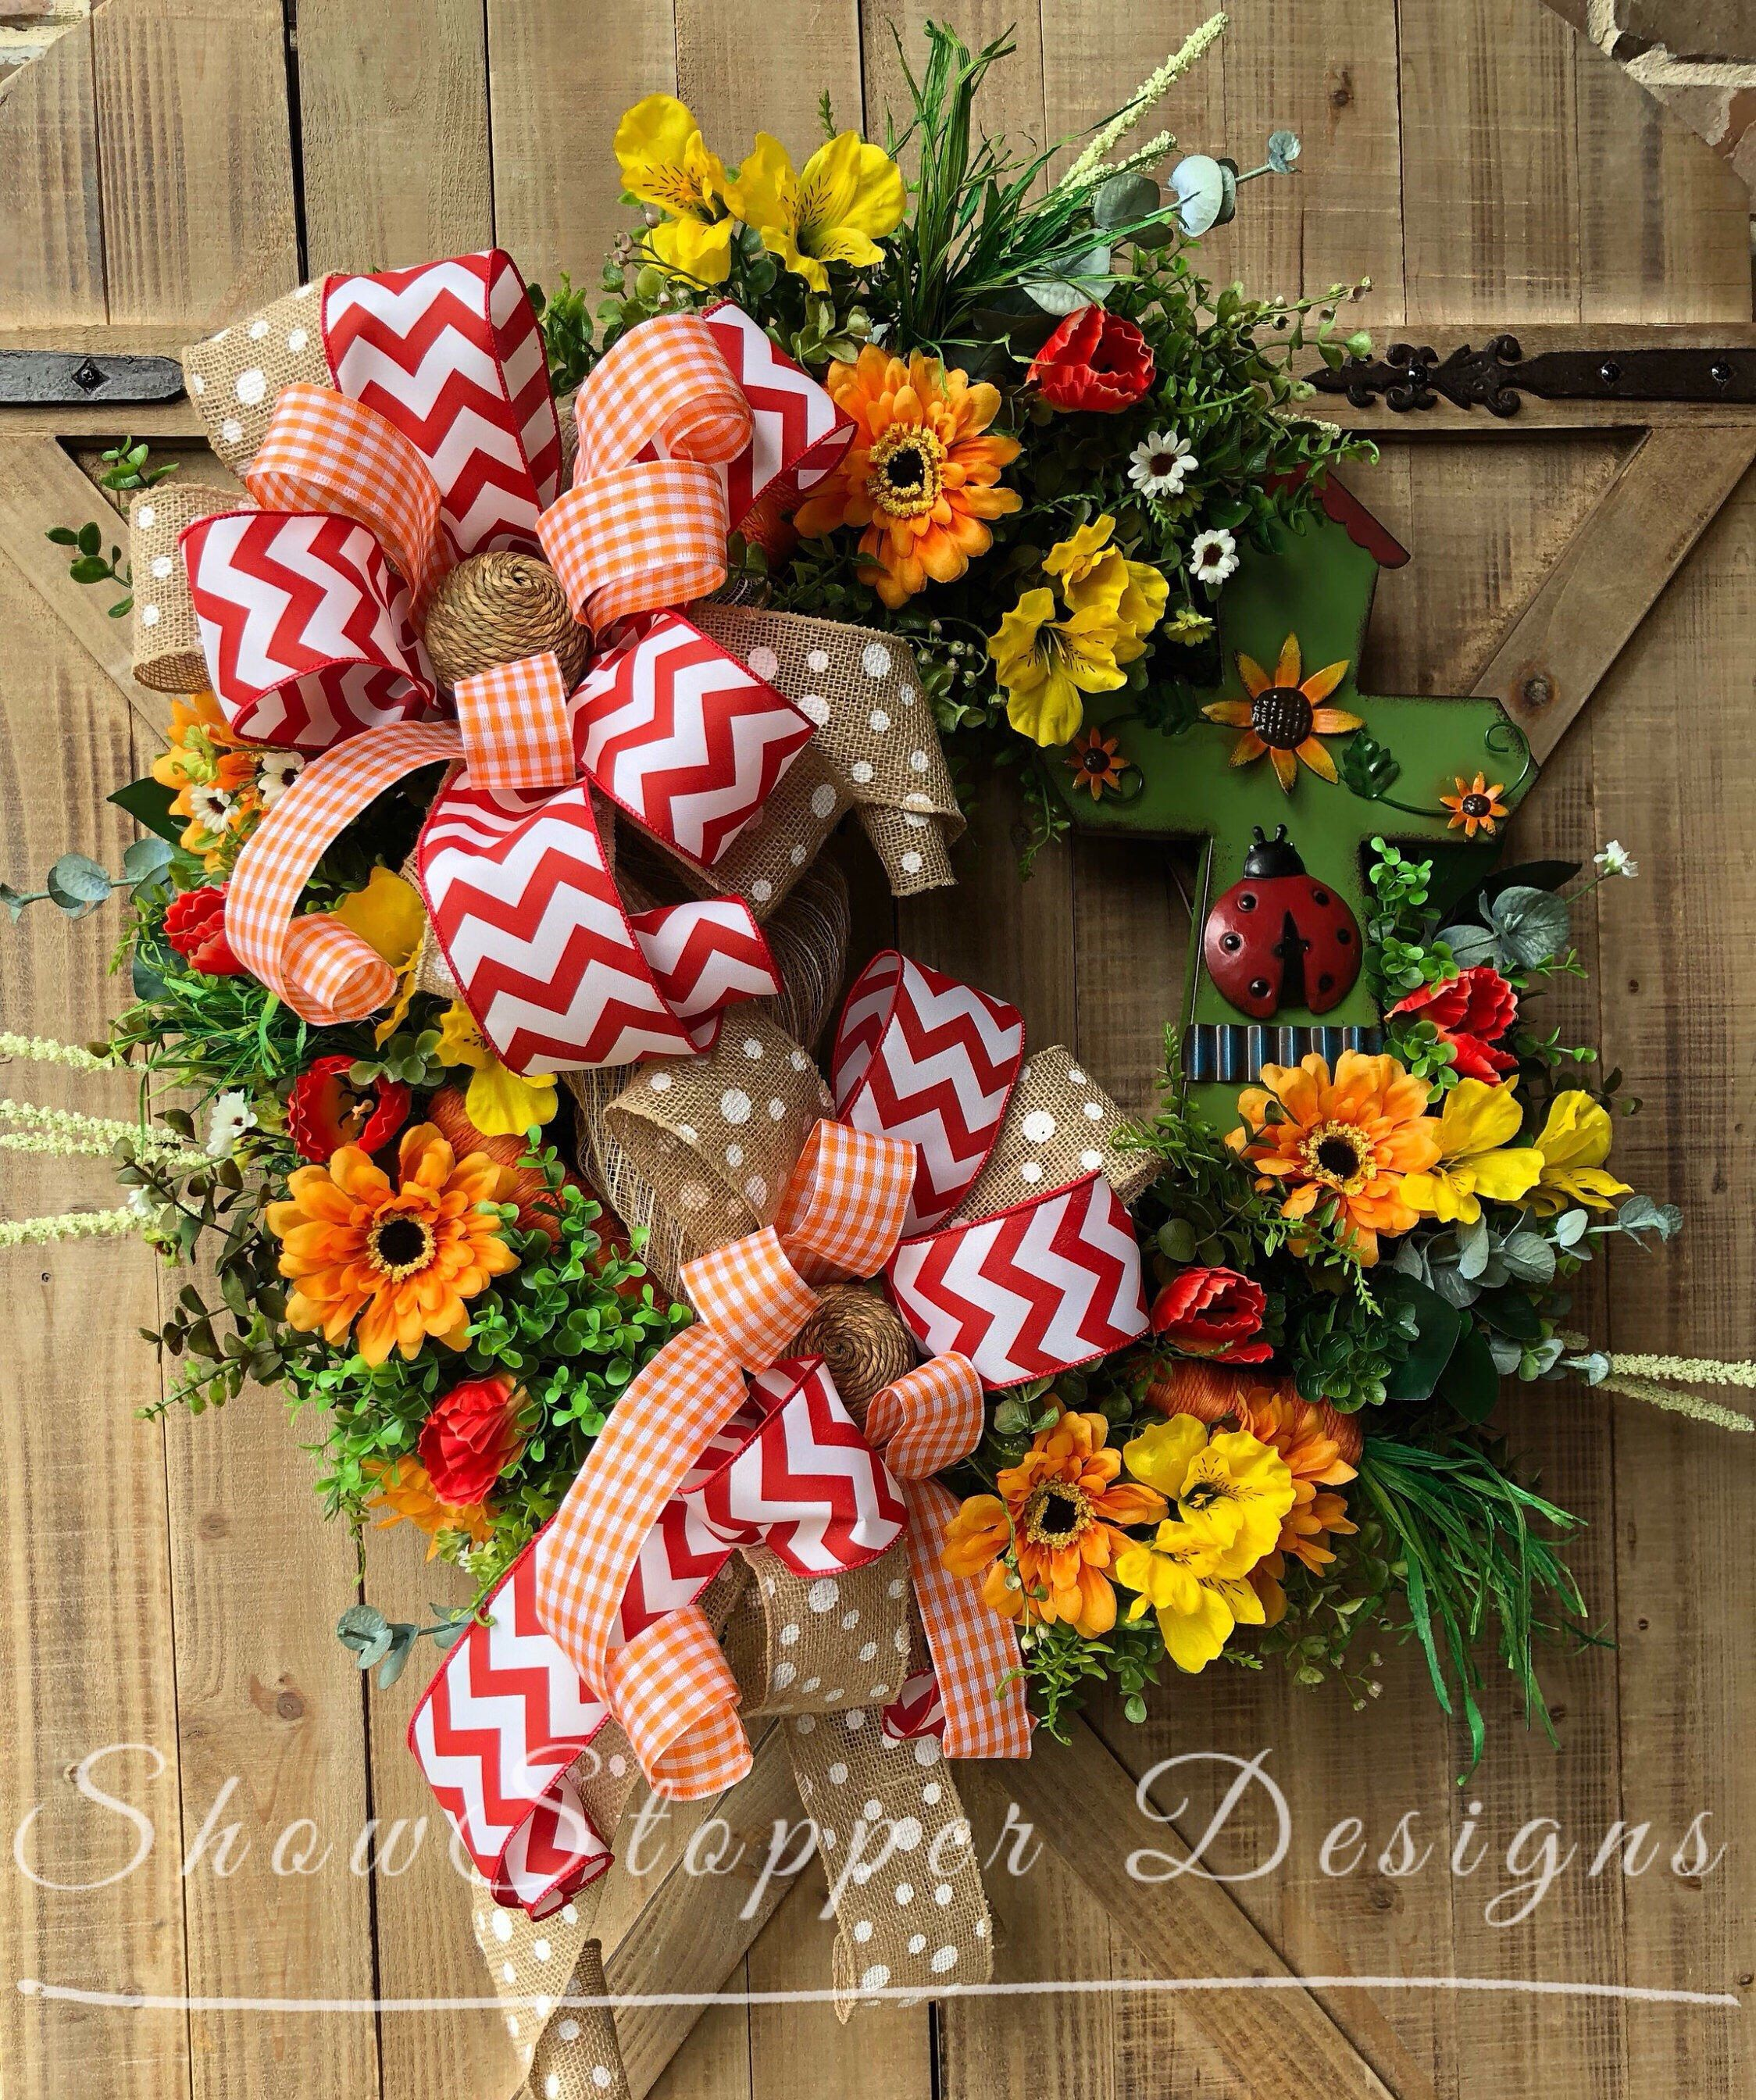 Ladybug Wreathsummer Wreathwelcome Door Signcross Door Welcome Door Signs Ladybug Wreath Material Wreaths